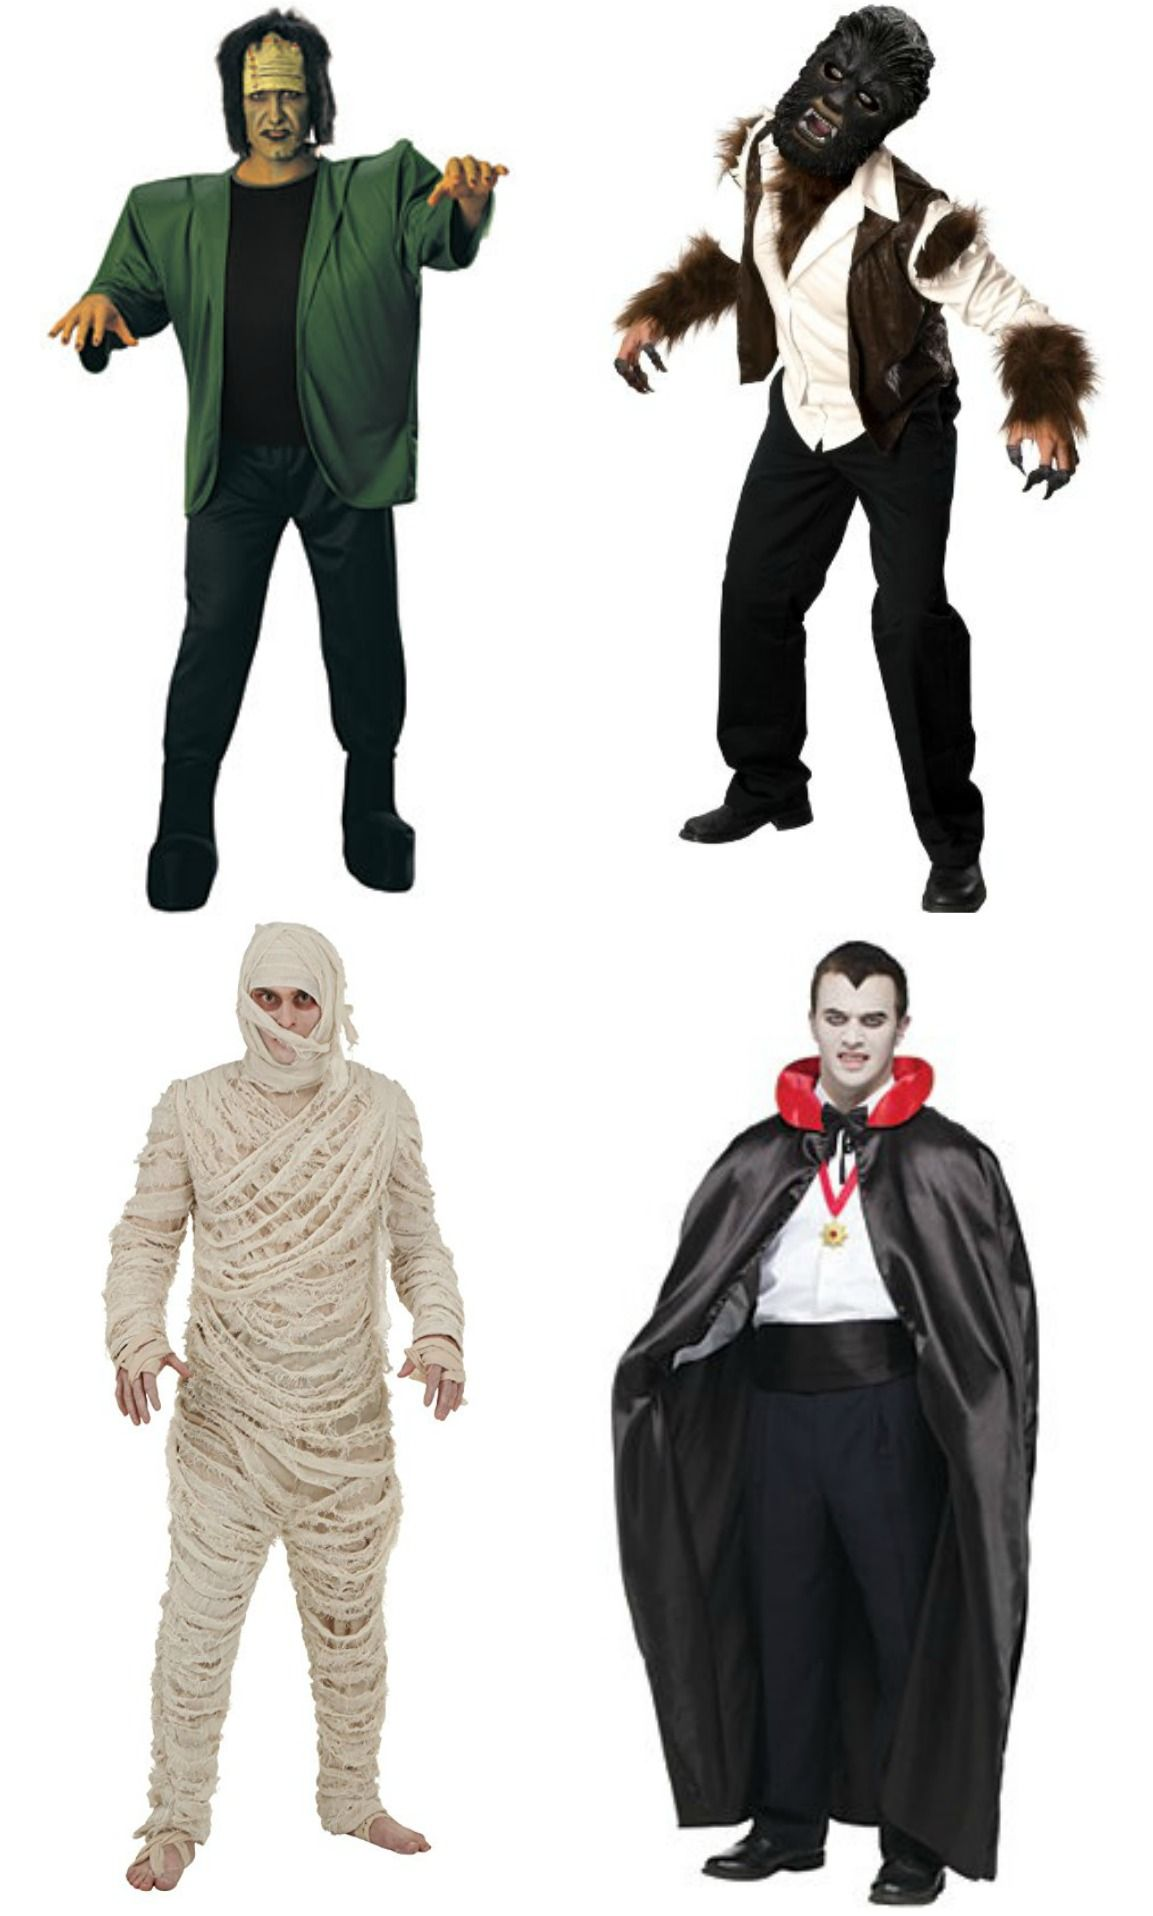 50 men's vintage halloween costume ideas | 1930s mens fashion